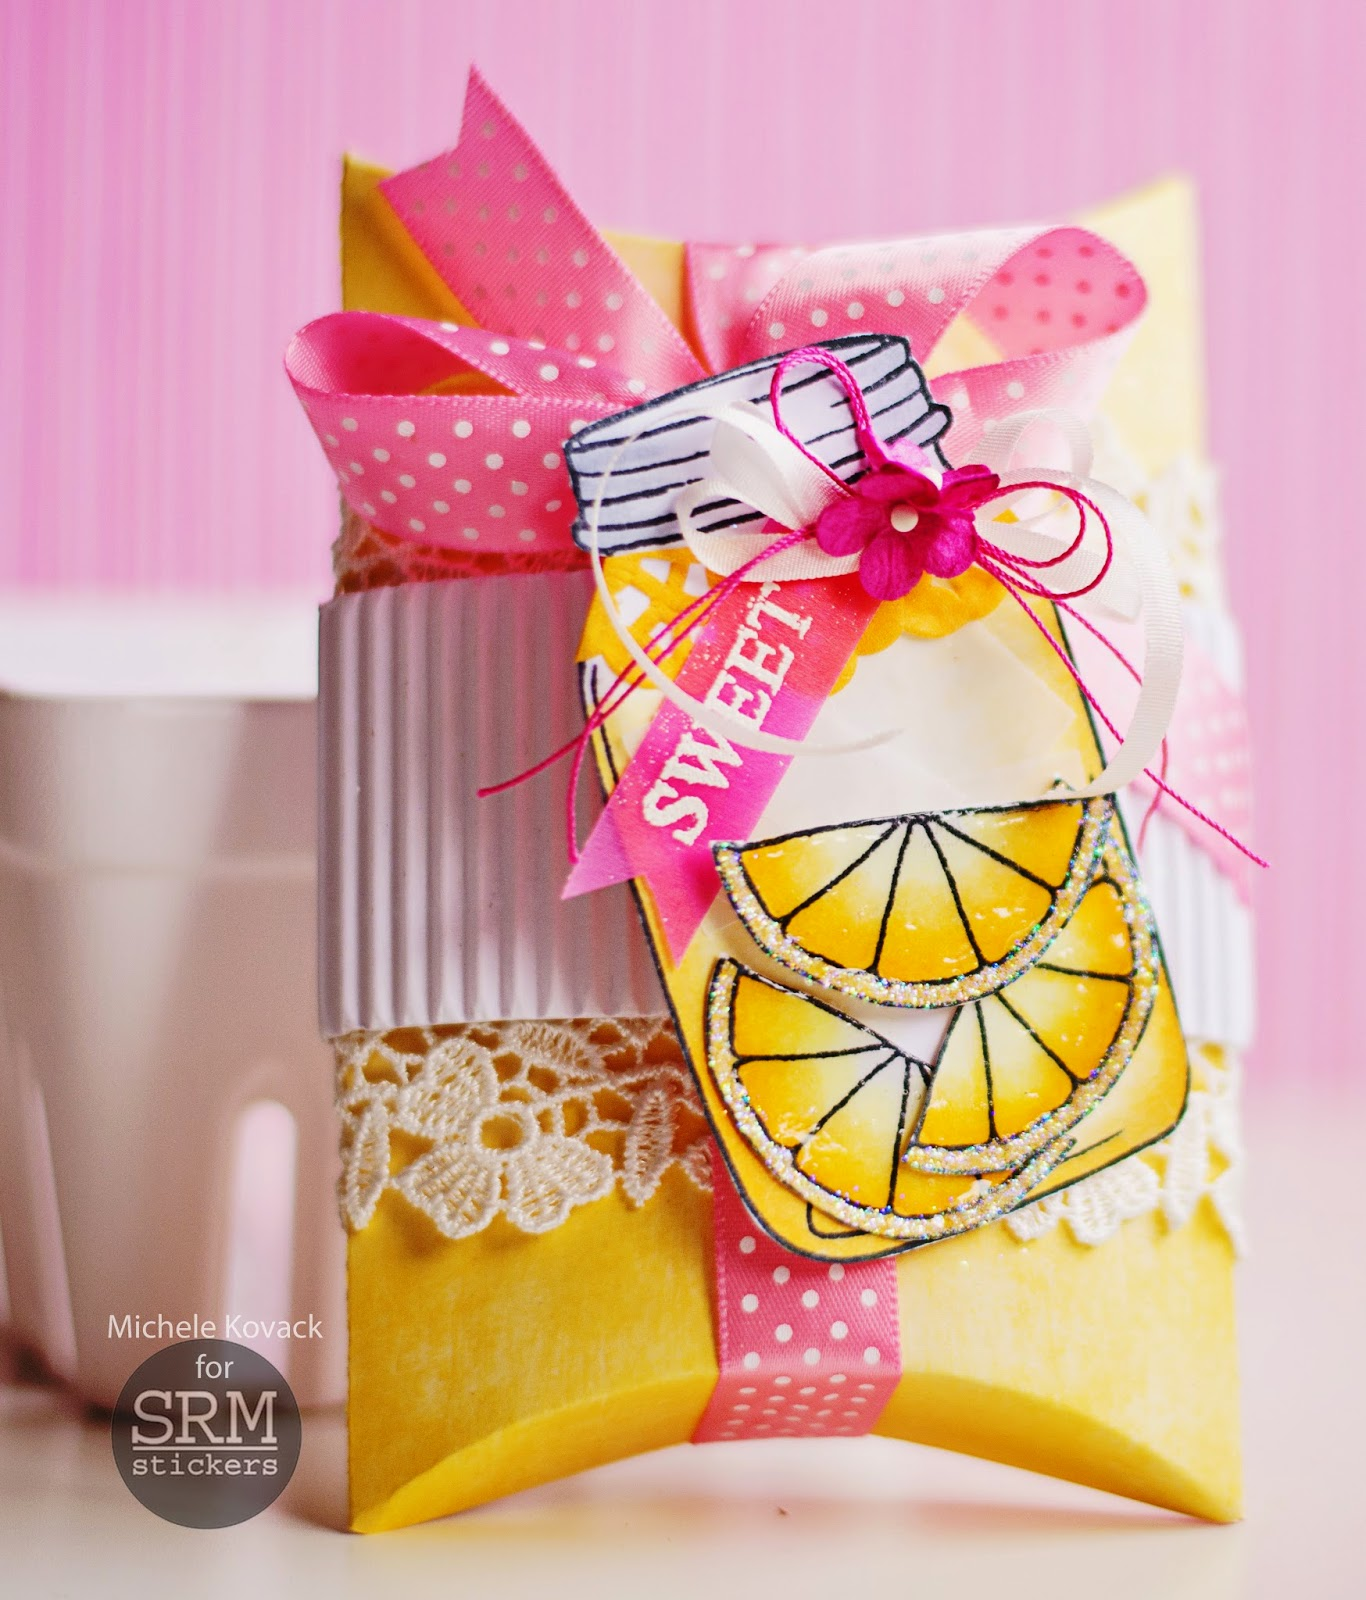 SRM Stickers Blog - Sweet Lemonade by Michele - #pillowbox #kraft #gift #clearstamps #janesdoodles #lifeisgood #DIY